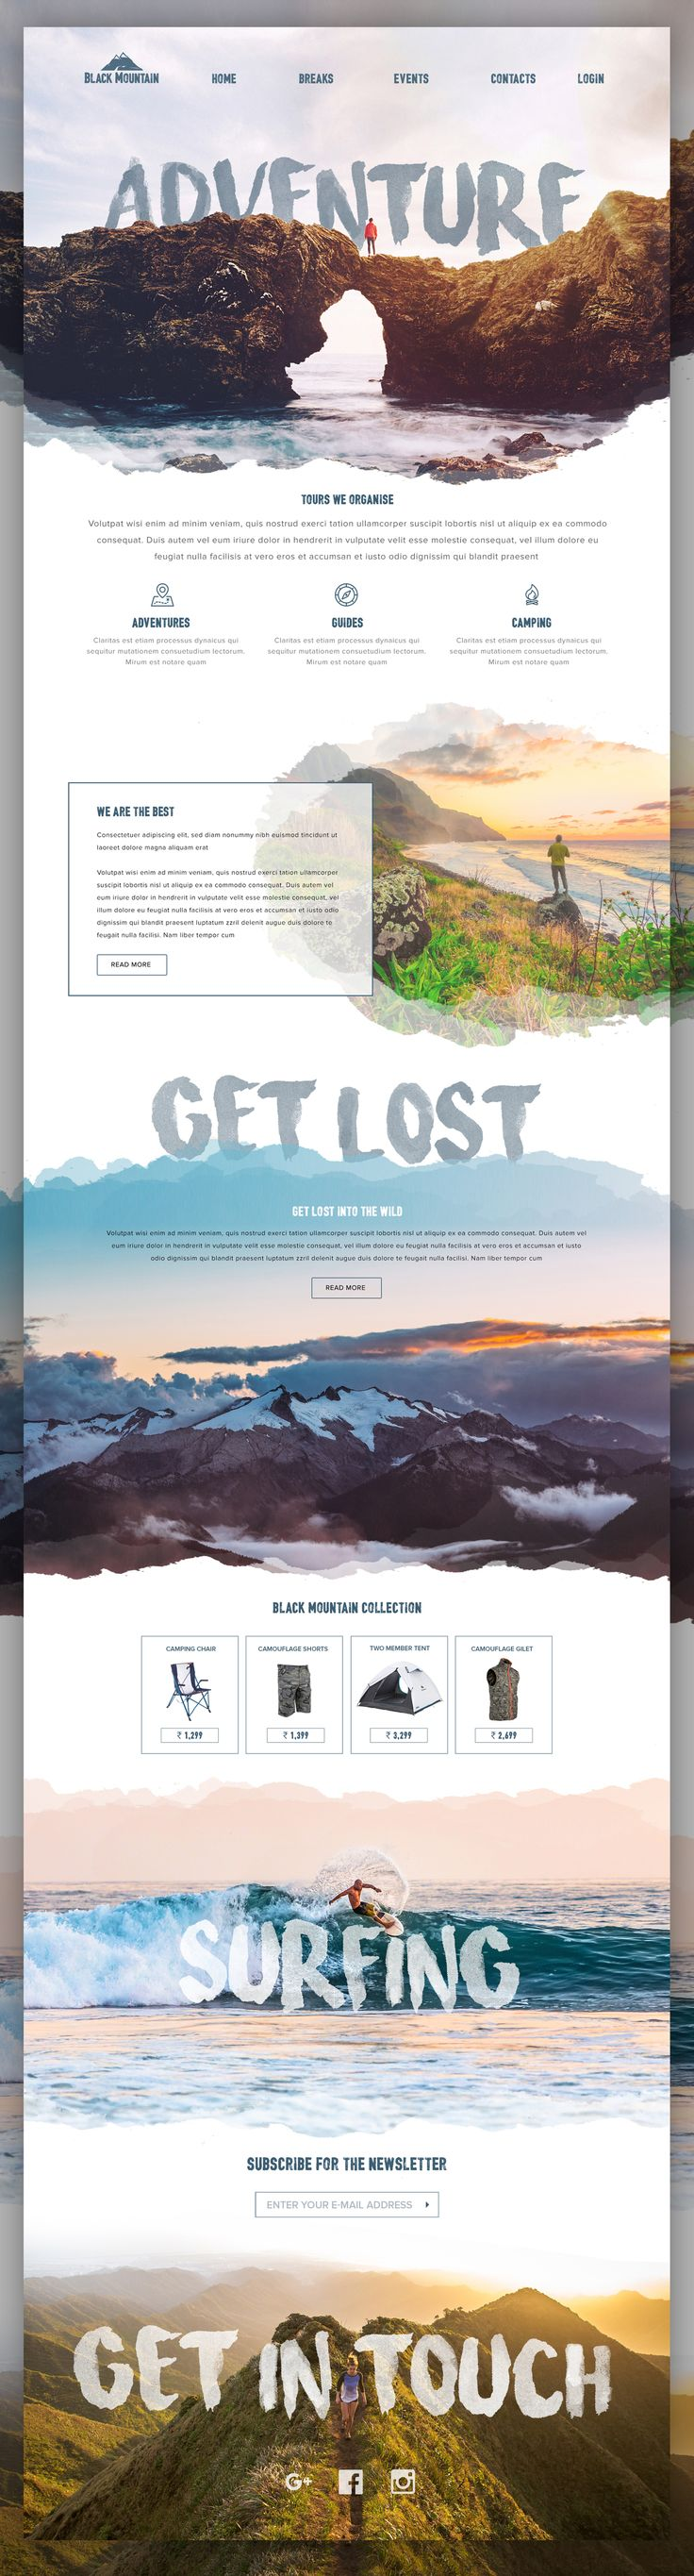 Best Travel Website Design Inspiration:  Design websites rh:pinterest.com,Design